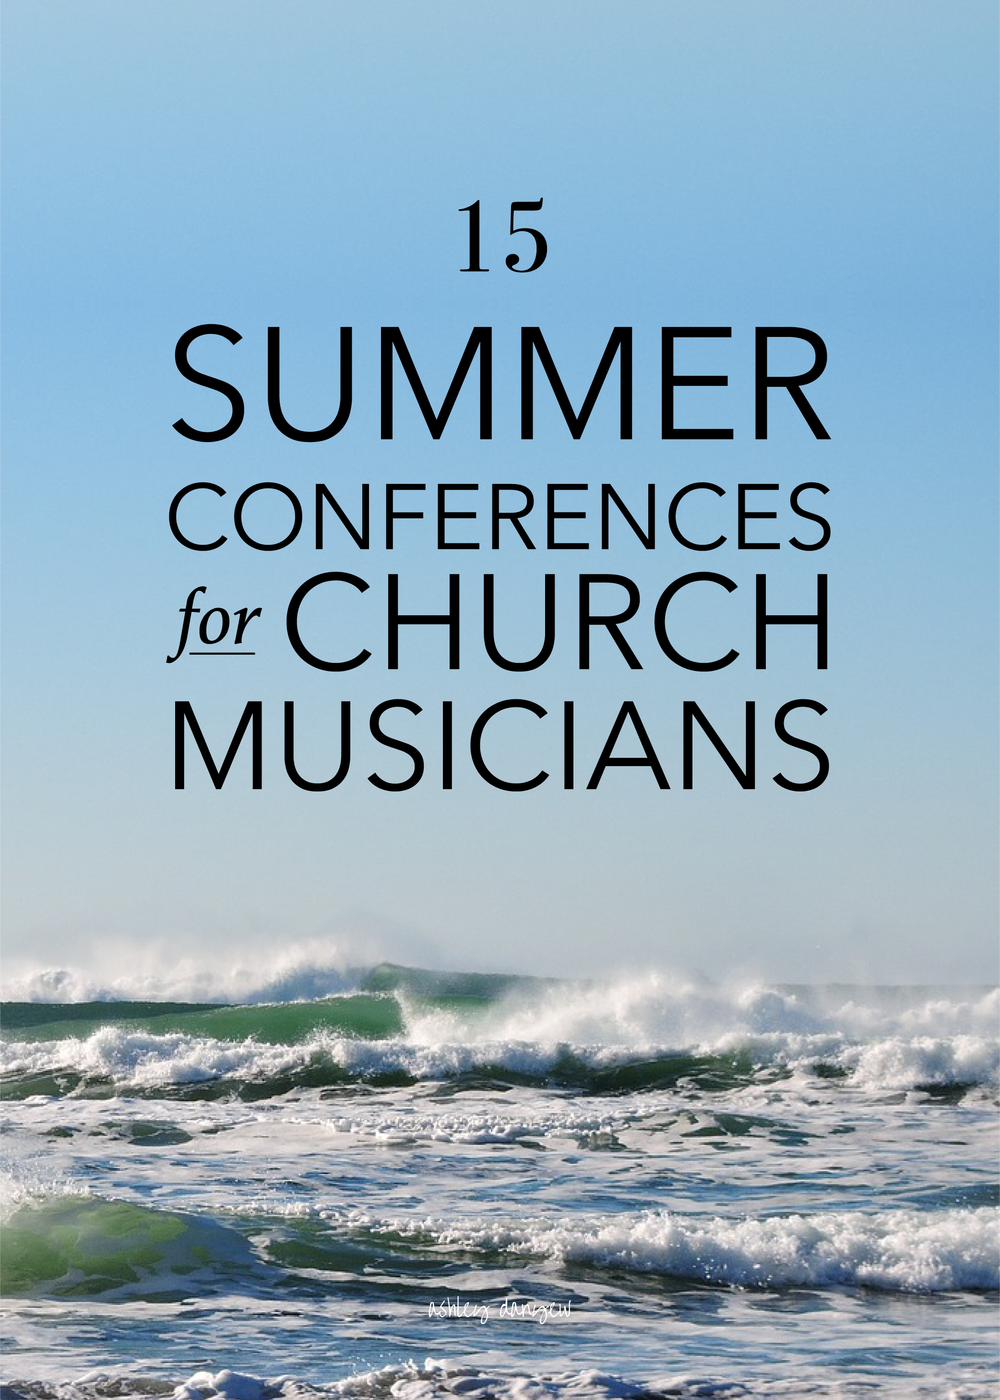 Copy of 15 Summer Conferences for Church Musicians